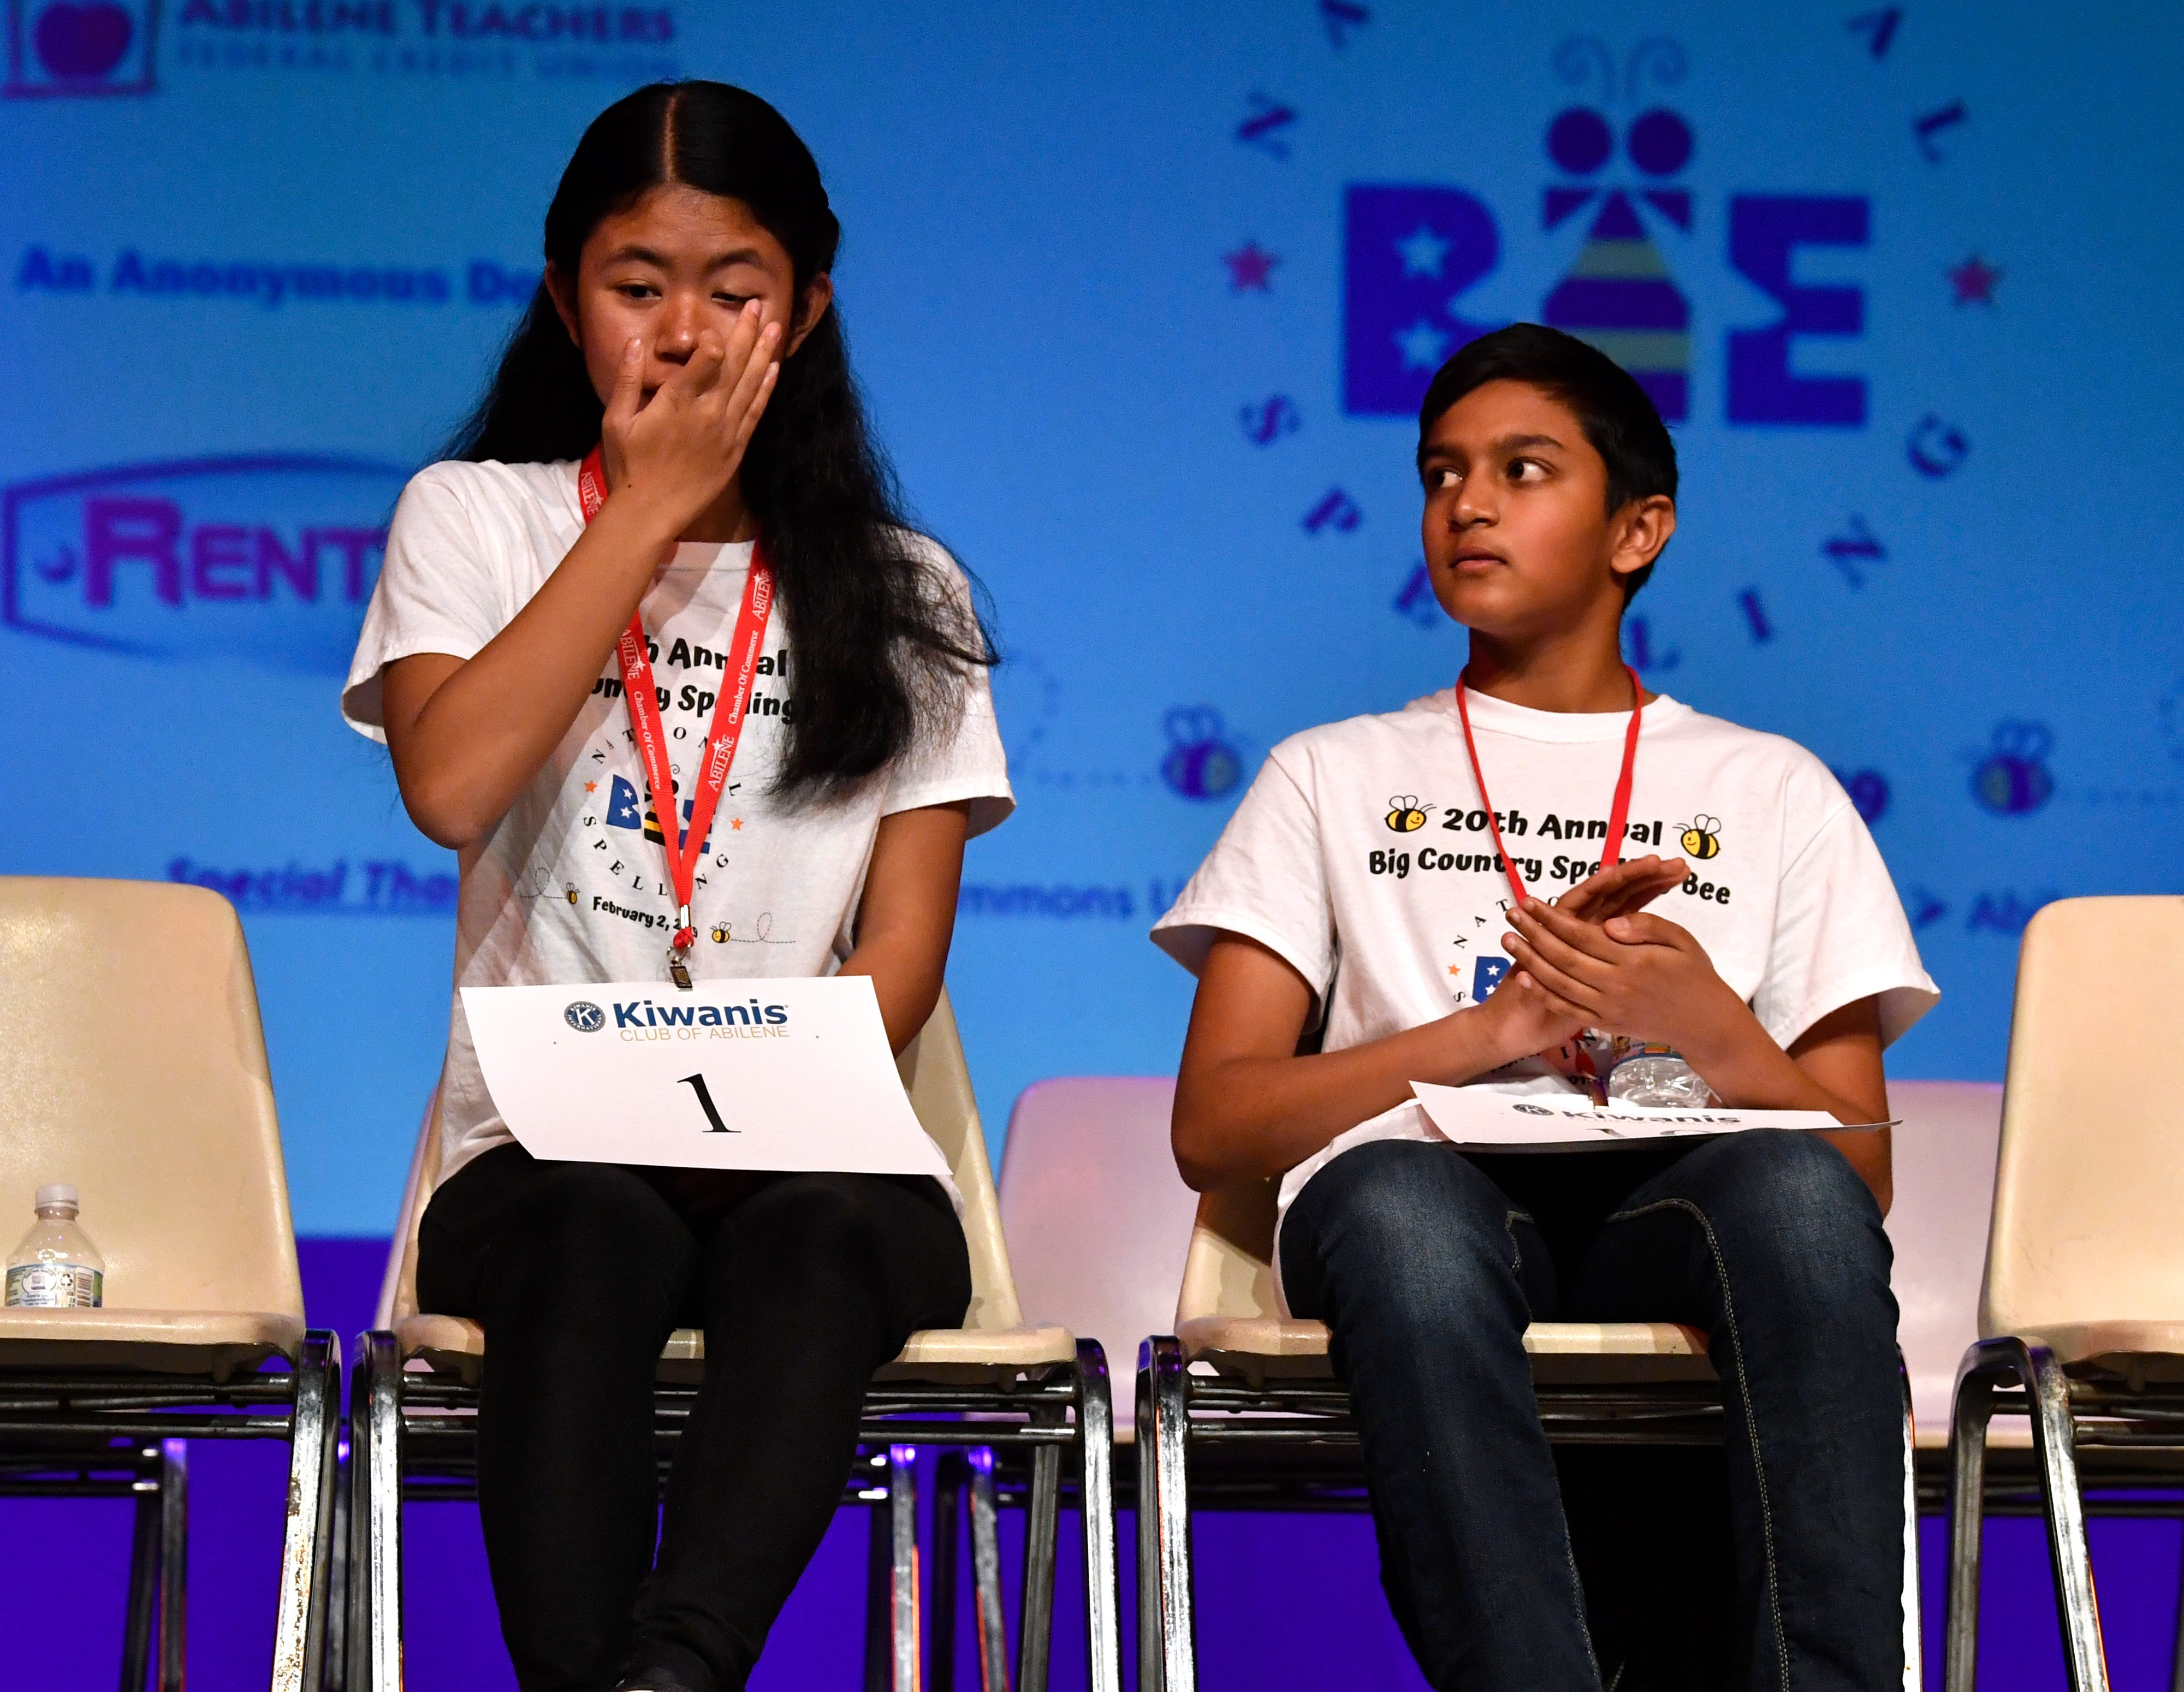 Sanay Salvi (left) applauds Neila Carias who wipes her eye after winning the 20th Big Country Spelling Bee Saturday at Hardin-Simmons University's Van Ellis Theatre Feb. 2, 2019. Sanay attends Wylie Junior High School and was named the alternate, Neila is a student at Clack Middle School.